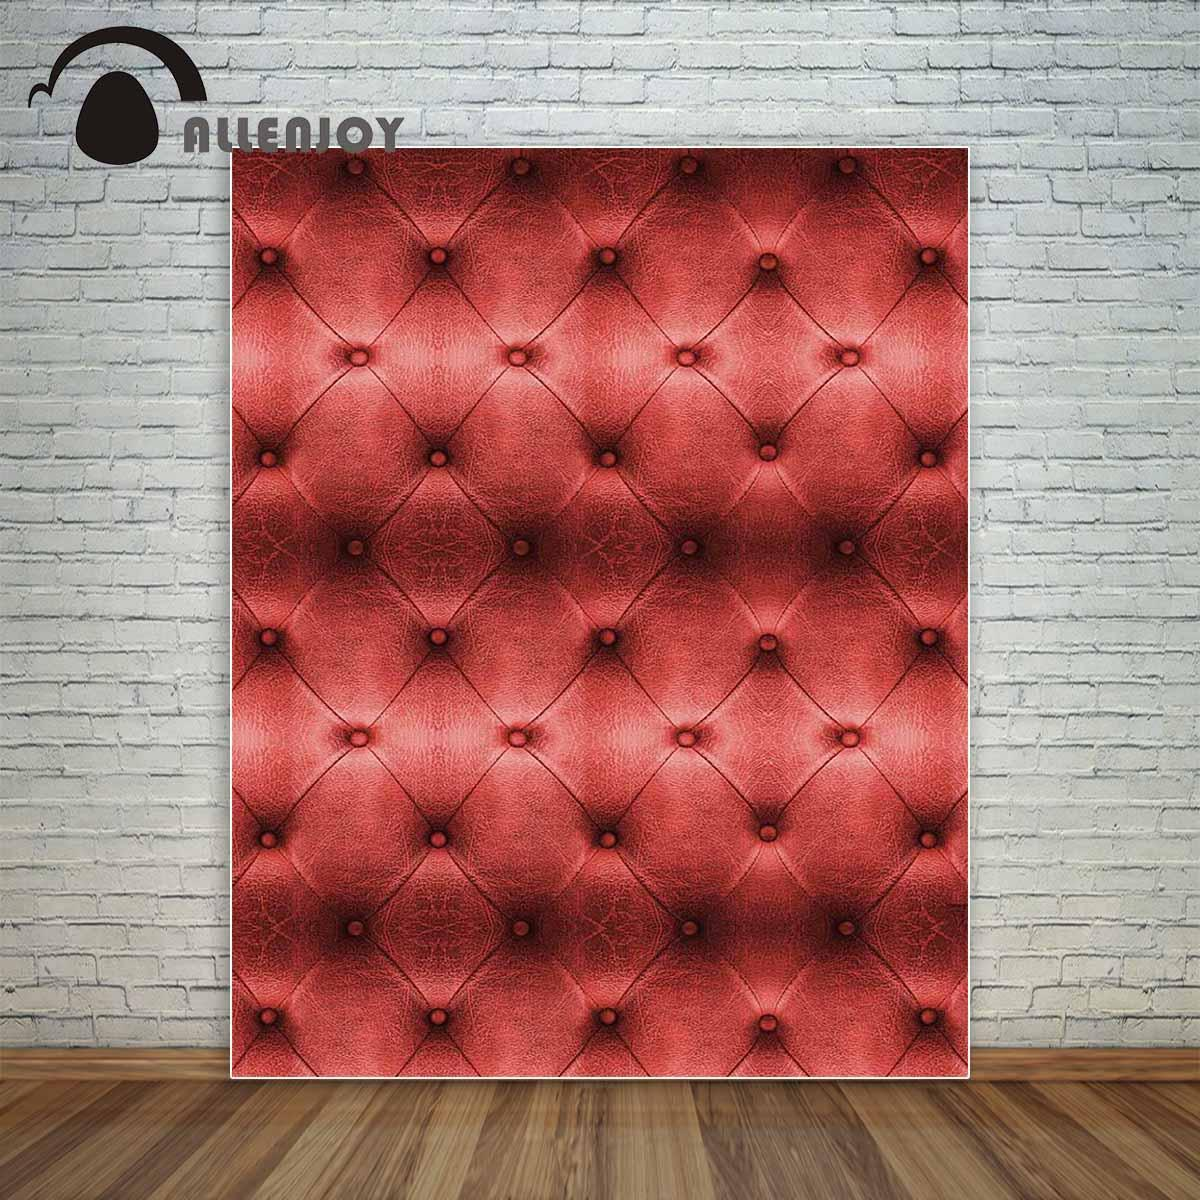 wholesale vinyl photo backdrop Luxury red leather sofa texture classic button bed board background photobooth new arrival design